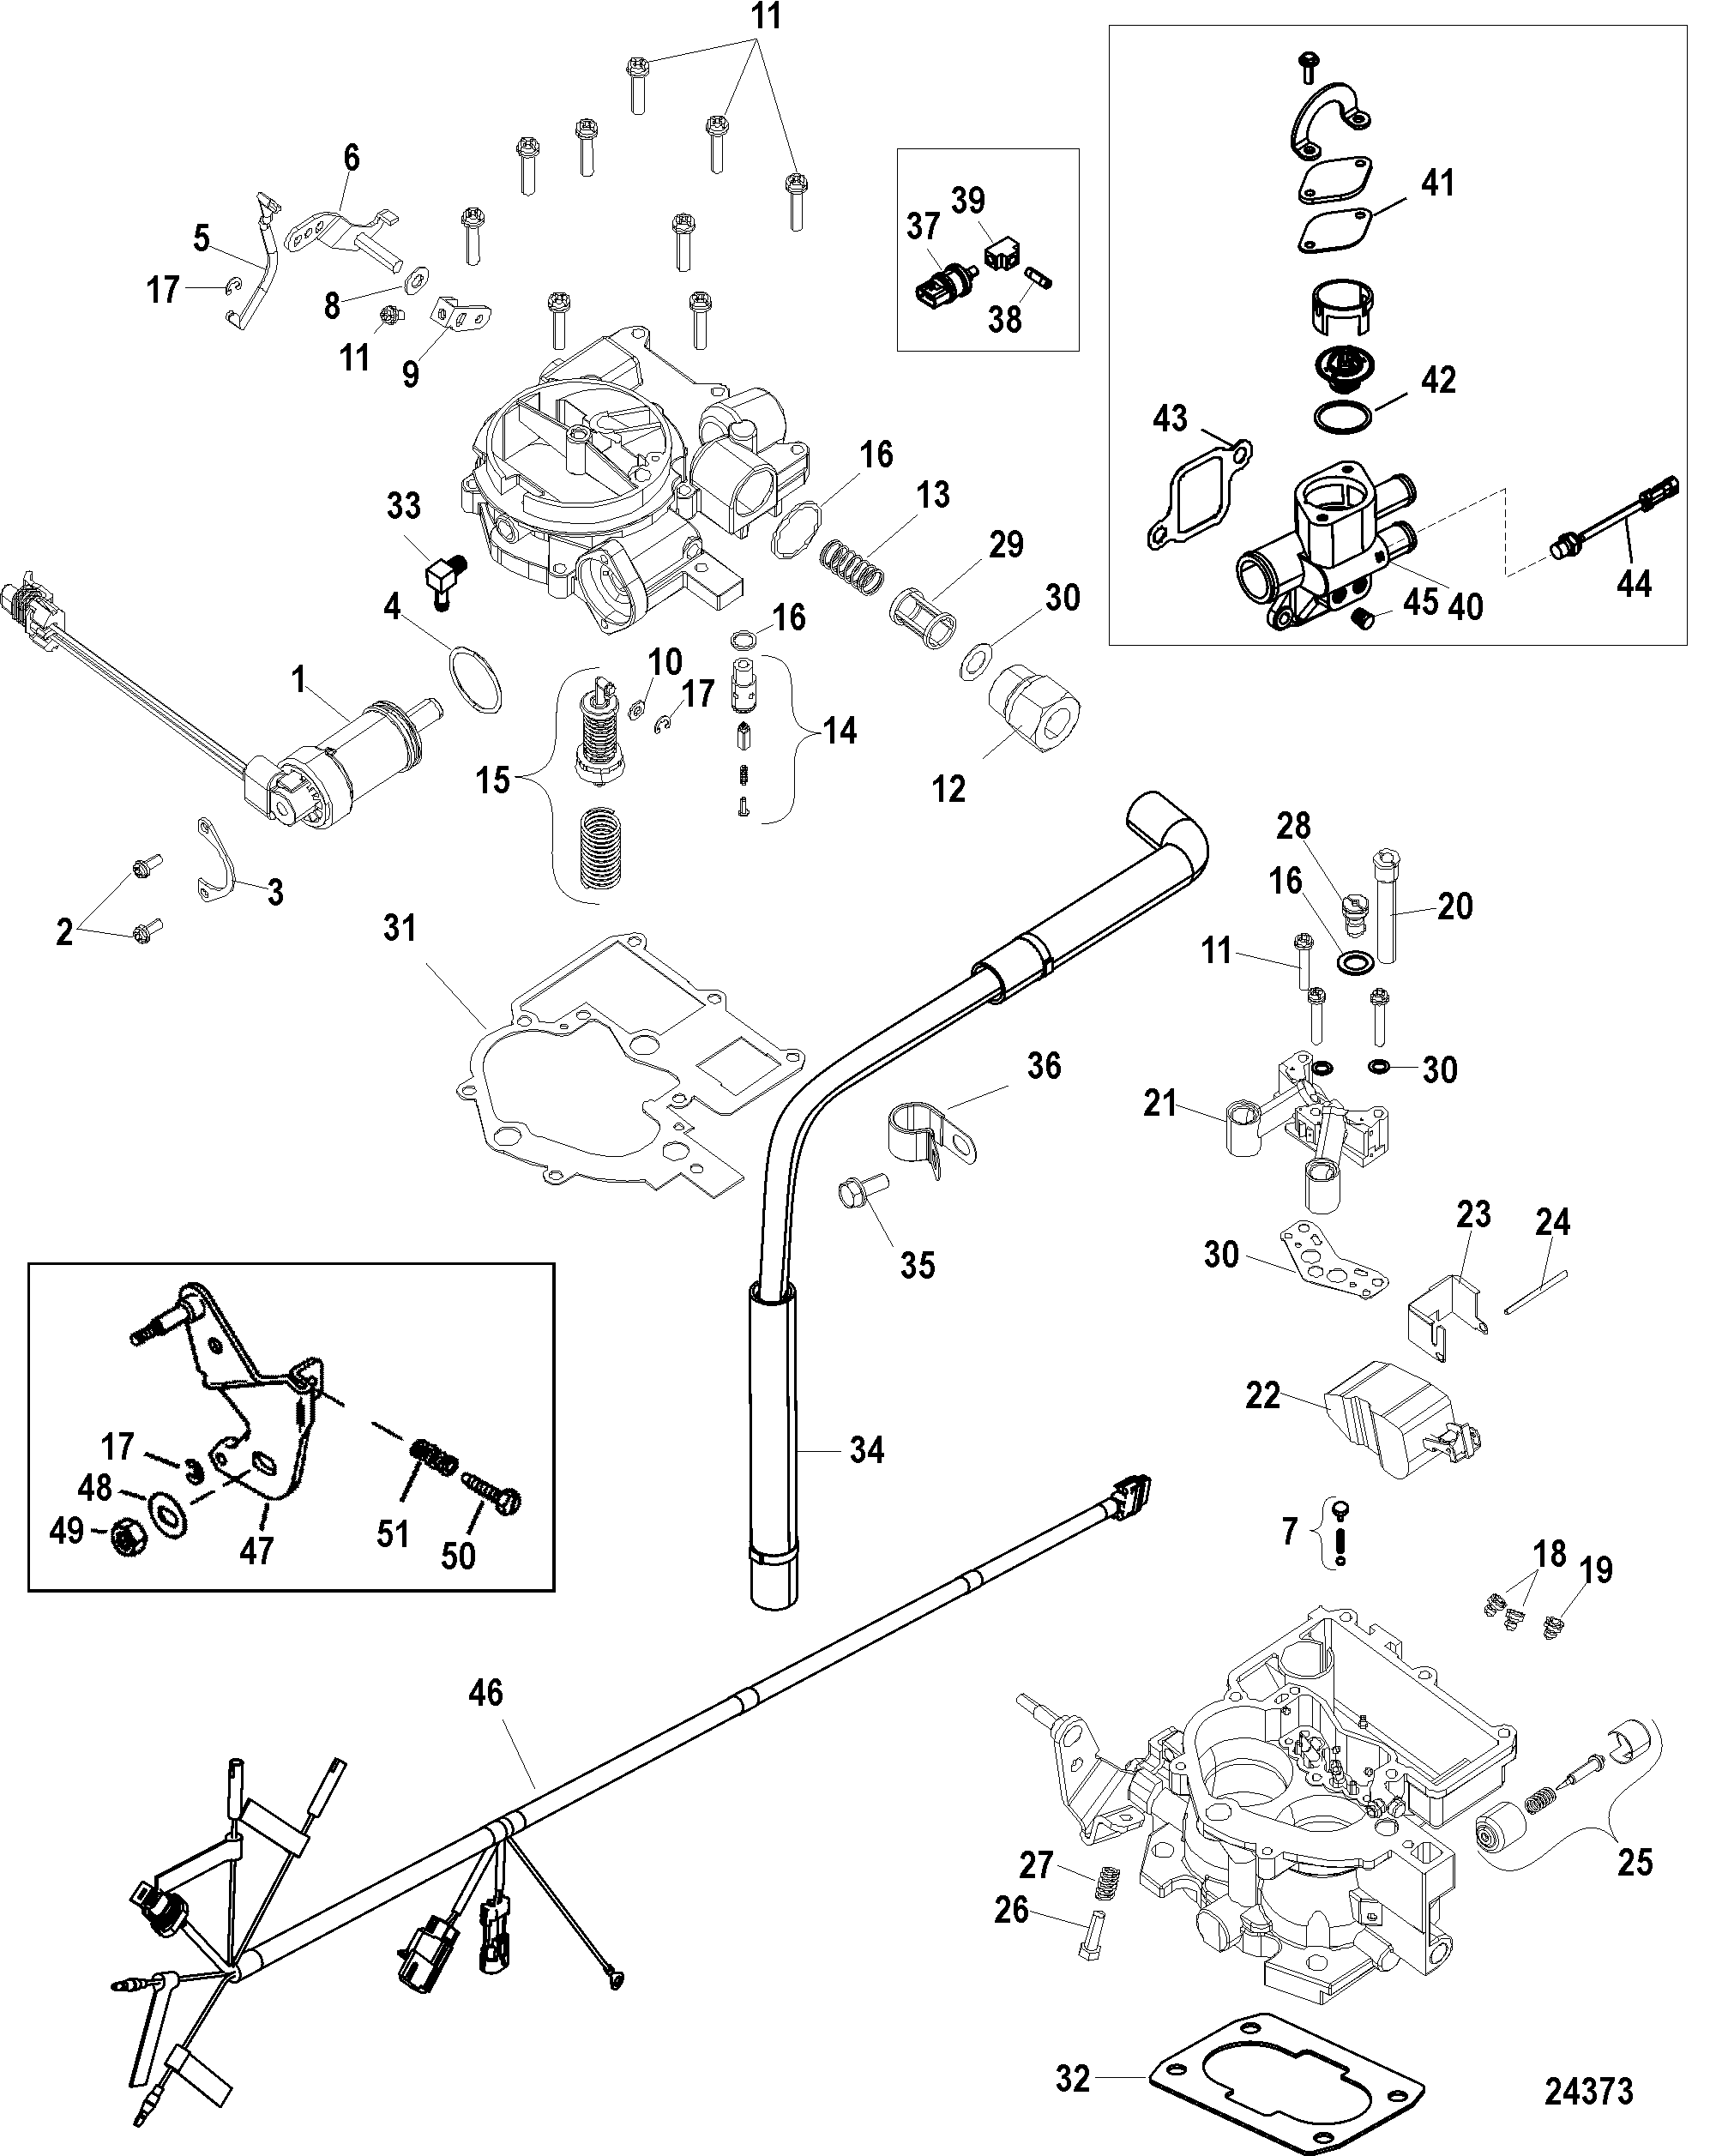 3 0 Mercruiser Wiring Diagram Diagrams Mercury 140 Hp Outboard Engine Parts On Images 25